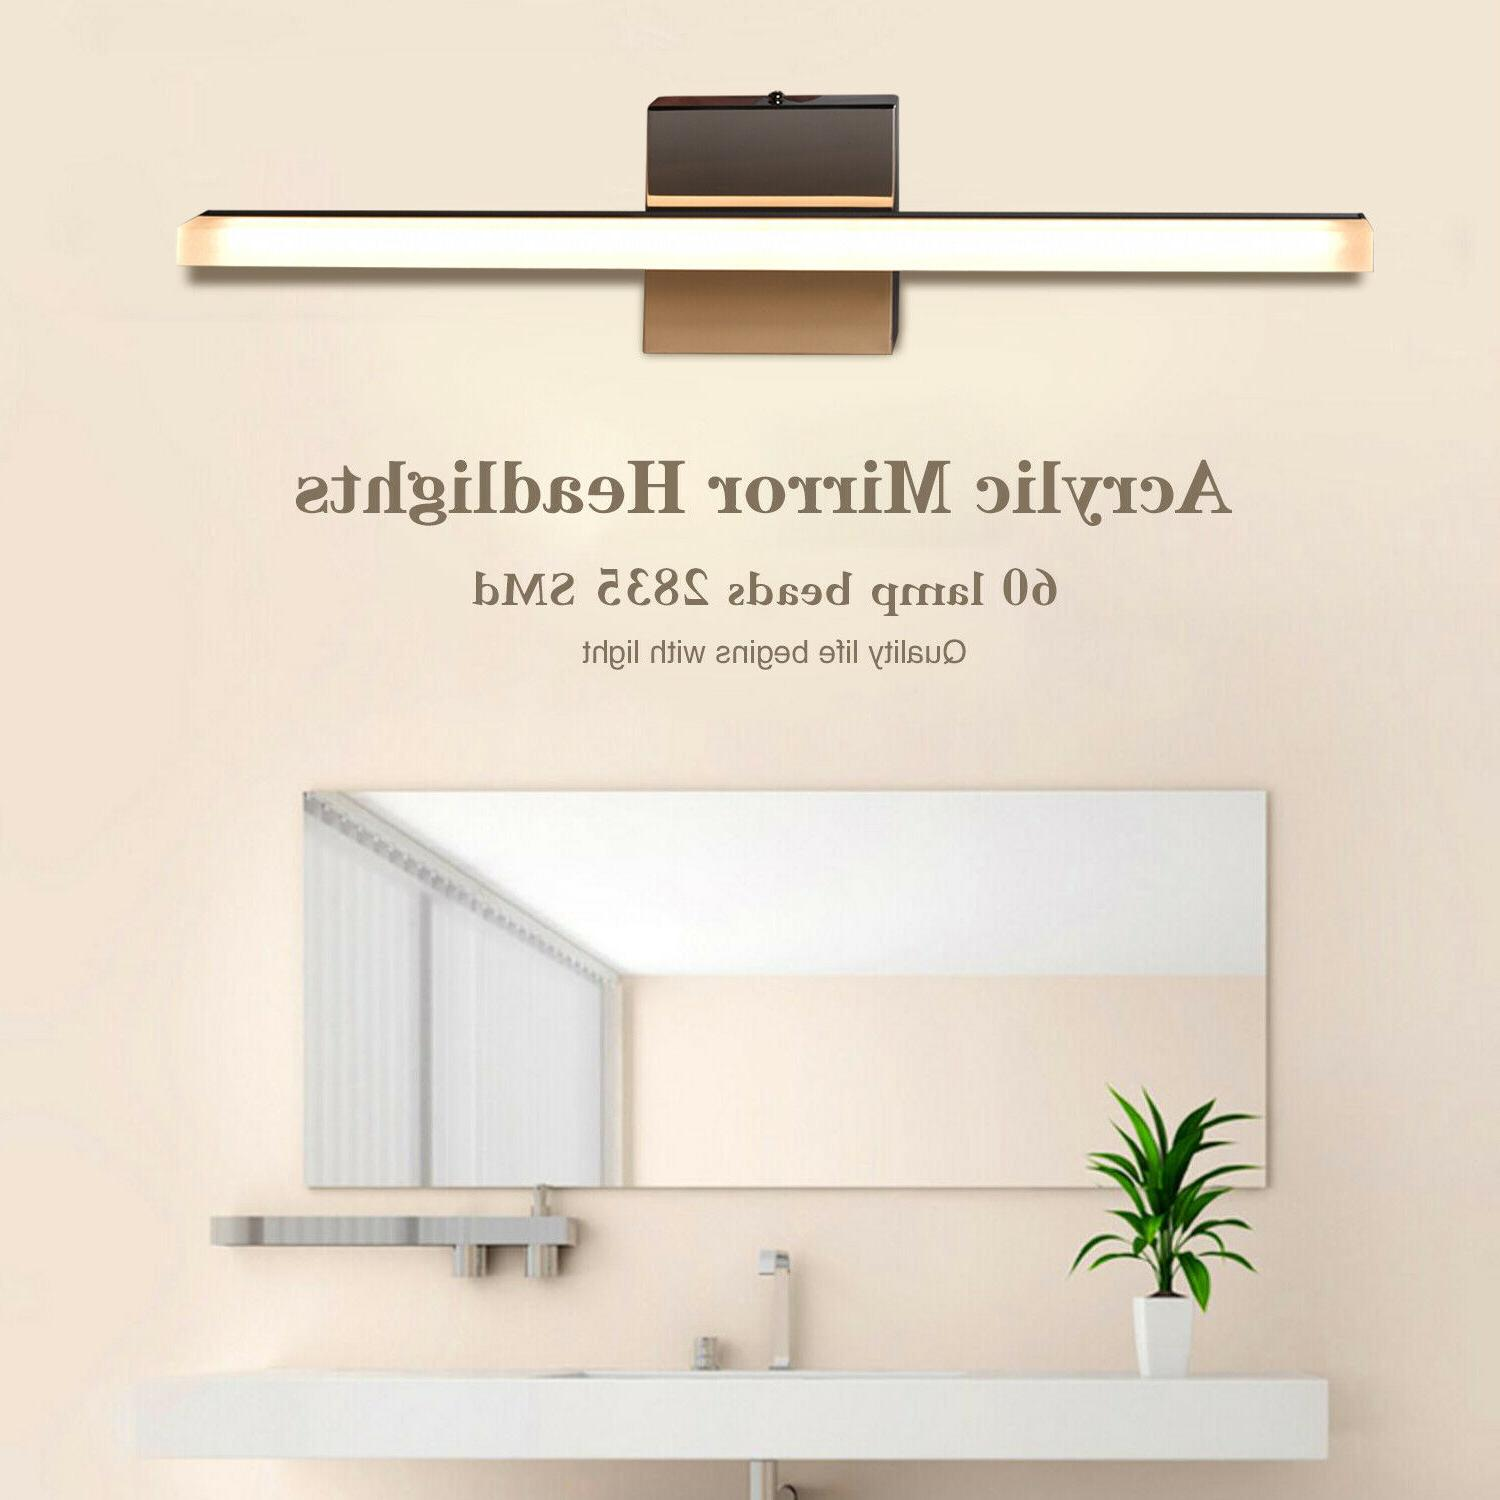 Bathroom Lamp LED Front Mirror Light Toilet Fixture Home